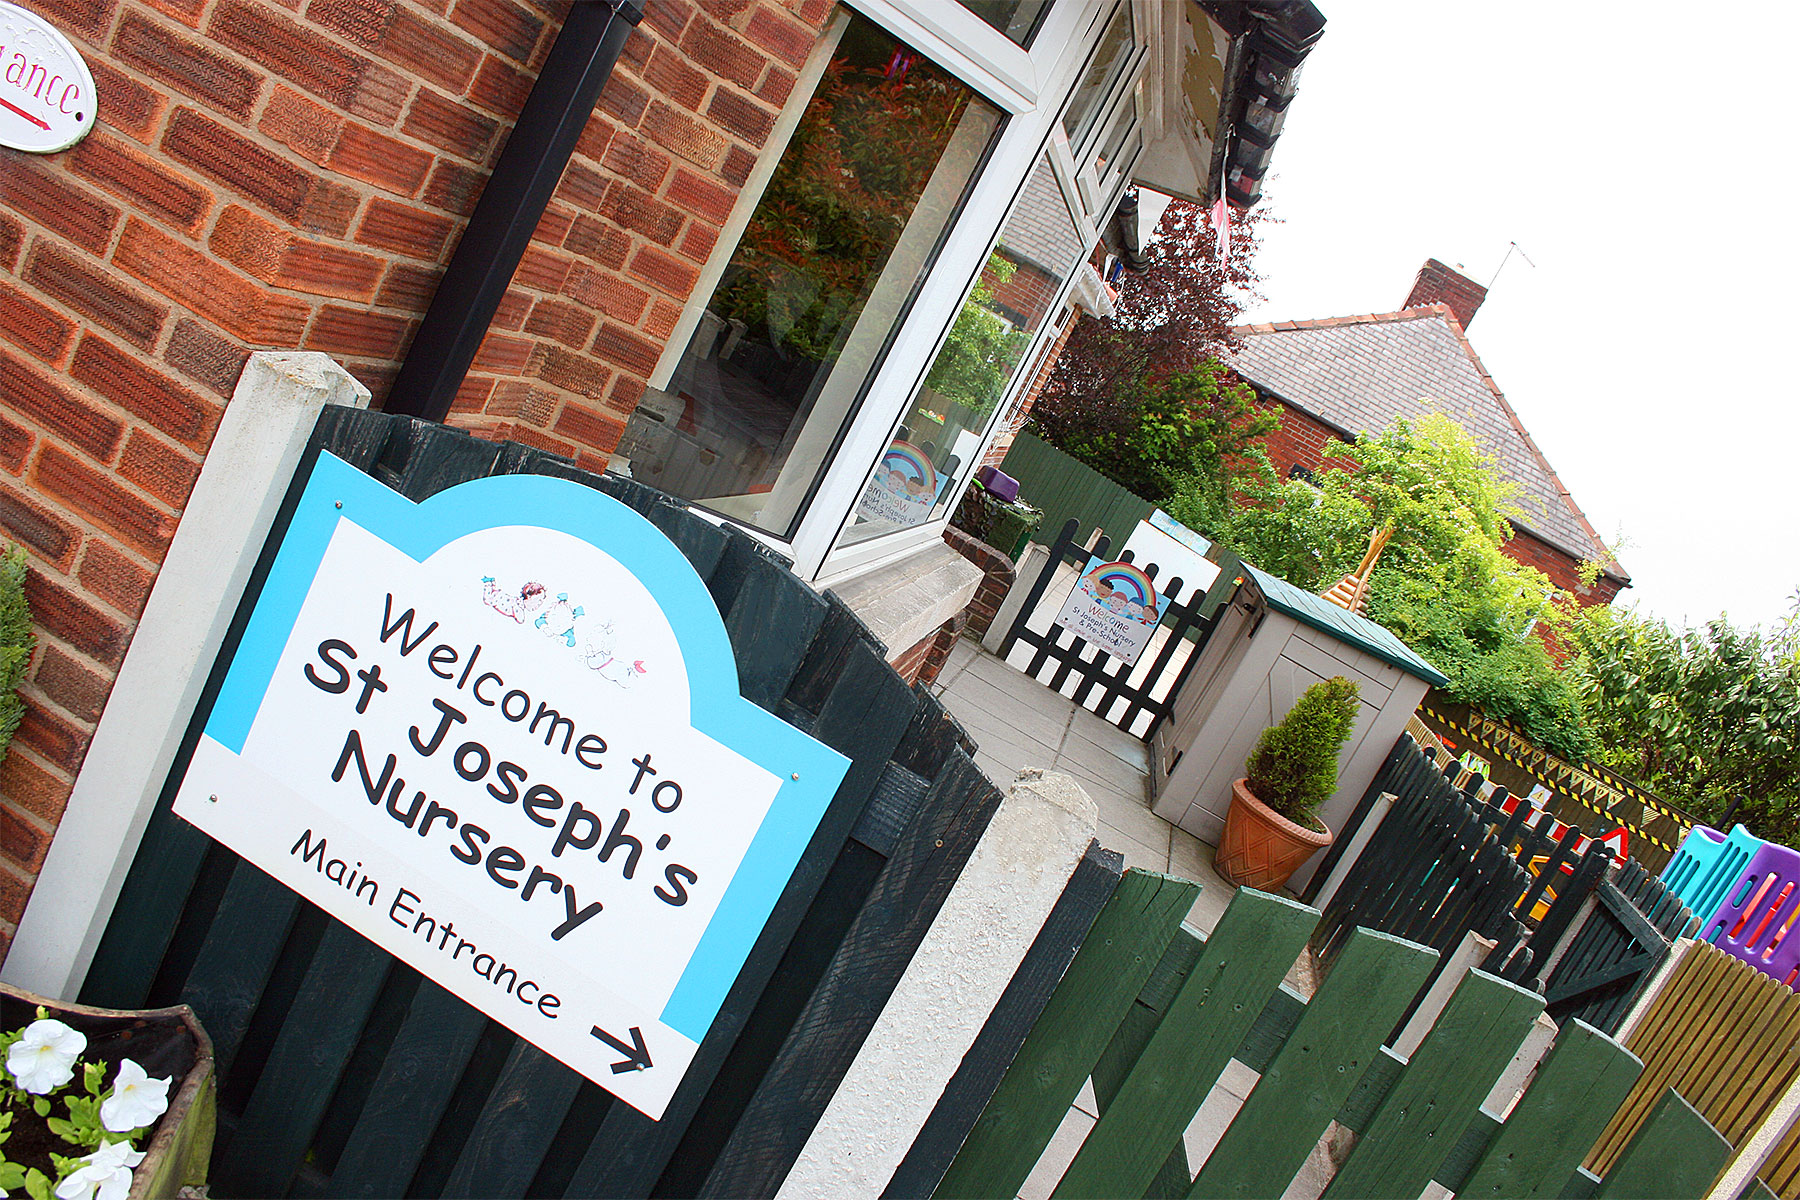 Nursery and Pre-School in Barnsley